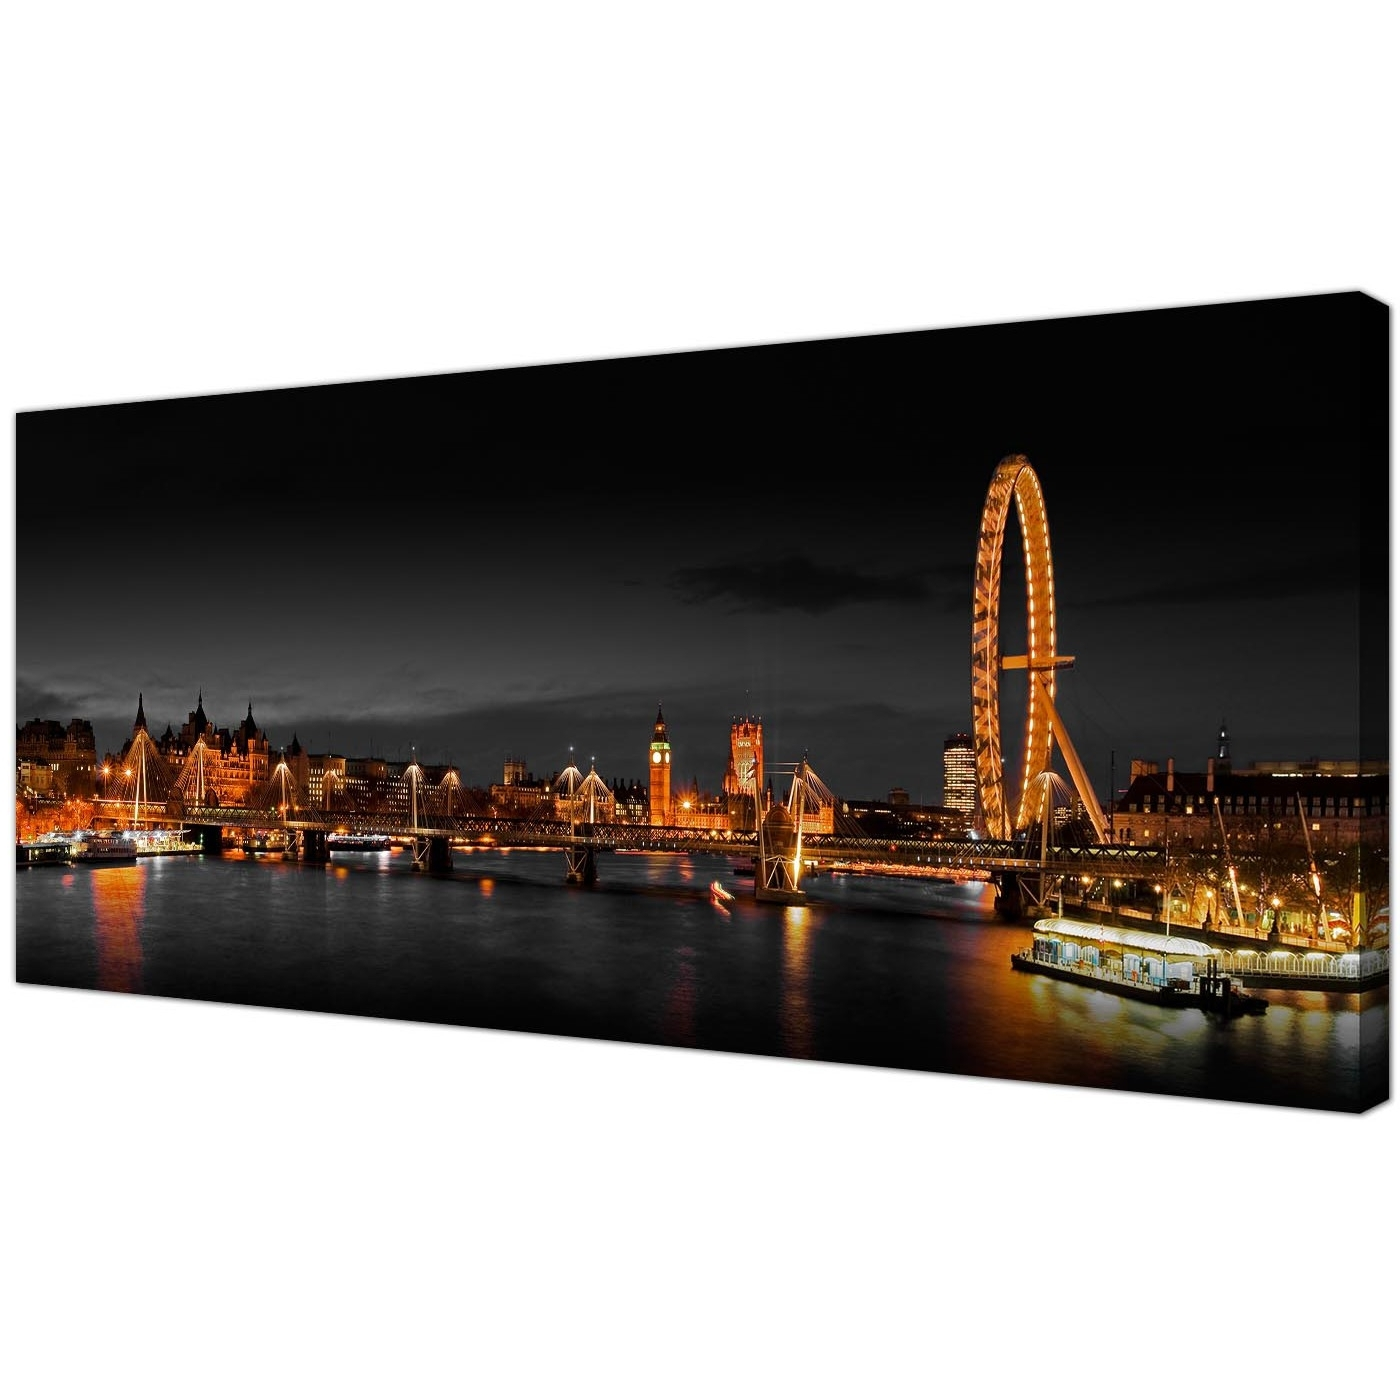 Cheap Canvas Wall Art For Most Recently Released Panoramic Canvas Wall Art Of London Eye At Night For Your Living Room (View 5 of 15)